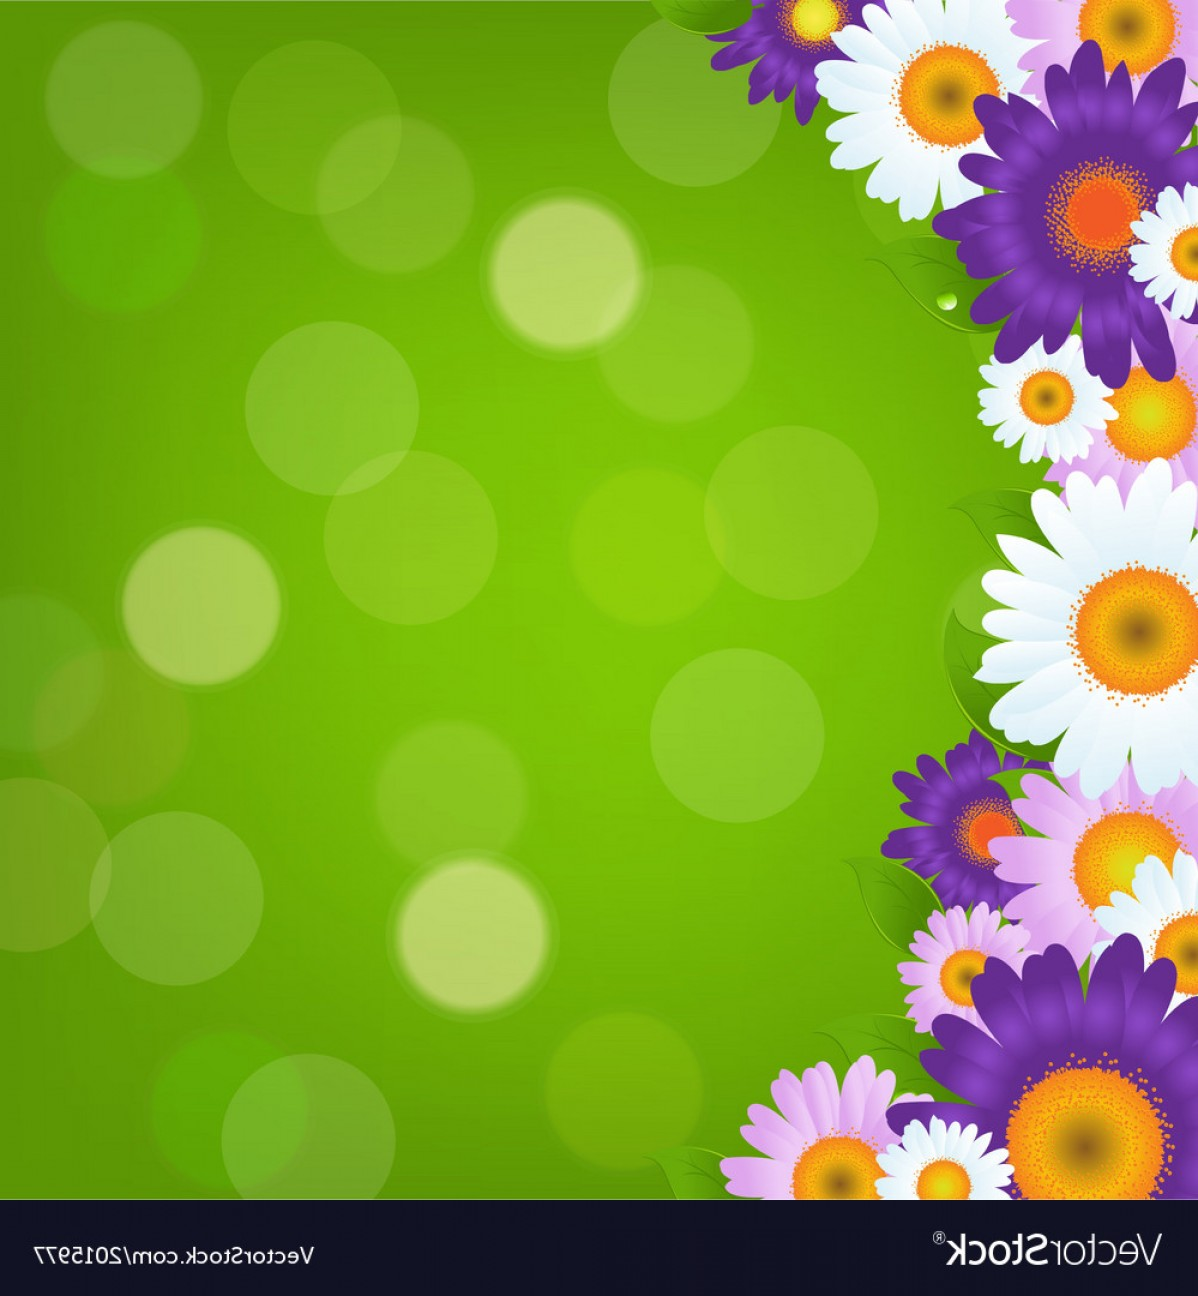 Purple Gerber Daisy Vector Framw: Colorful Gerbers Flowers Frame With Green Bokeh Vector